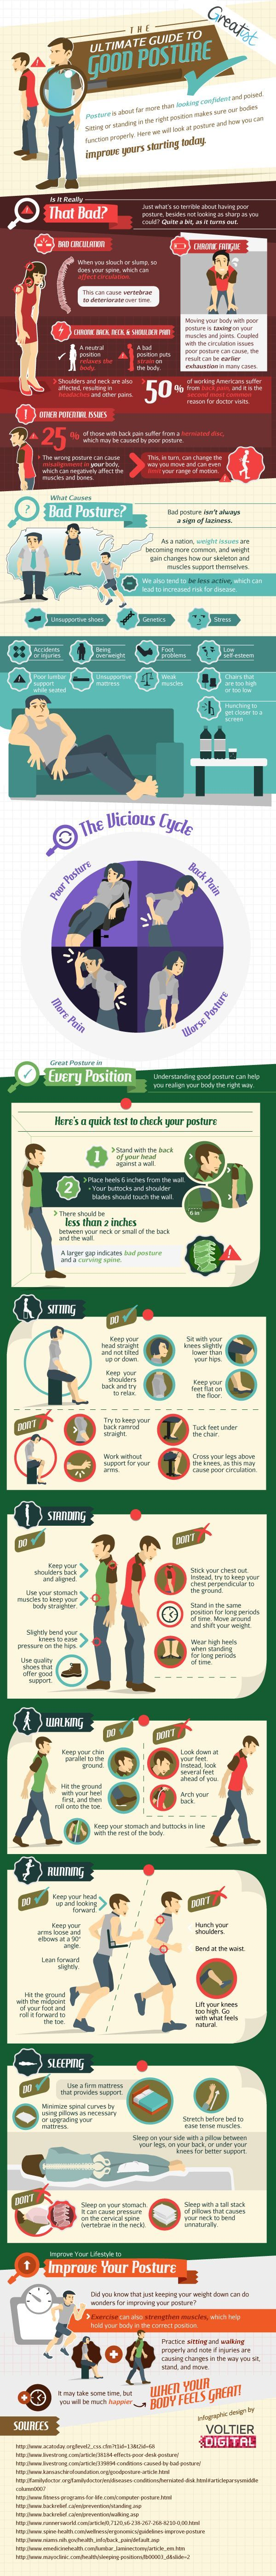 Your Guide to Good Posture #health tips #greatist #howto